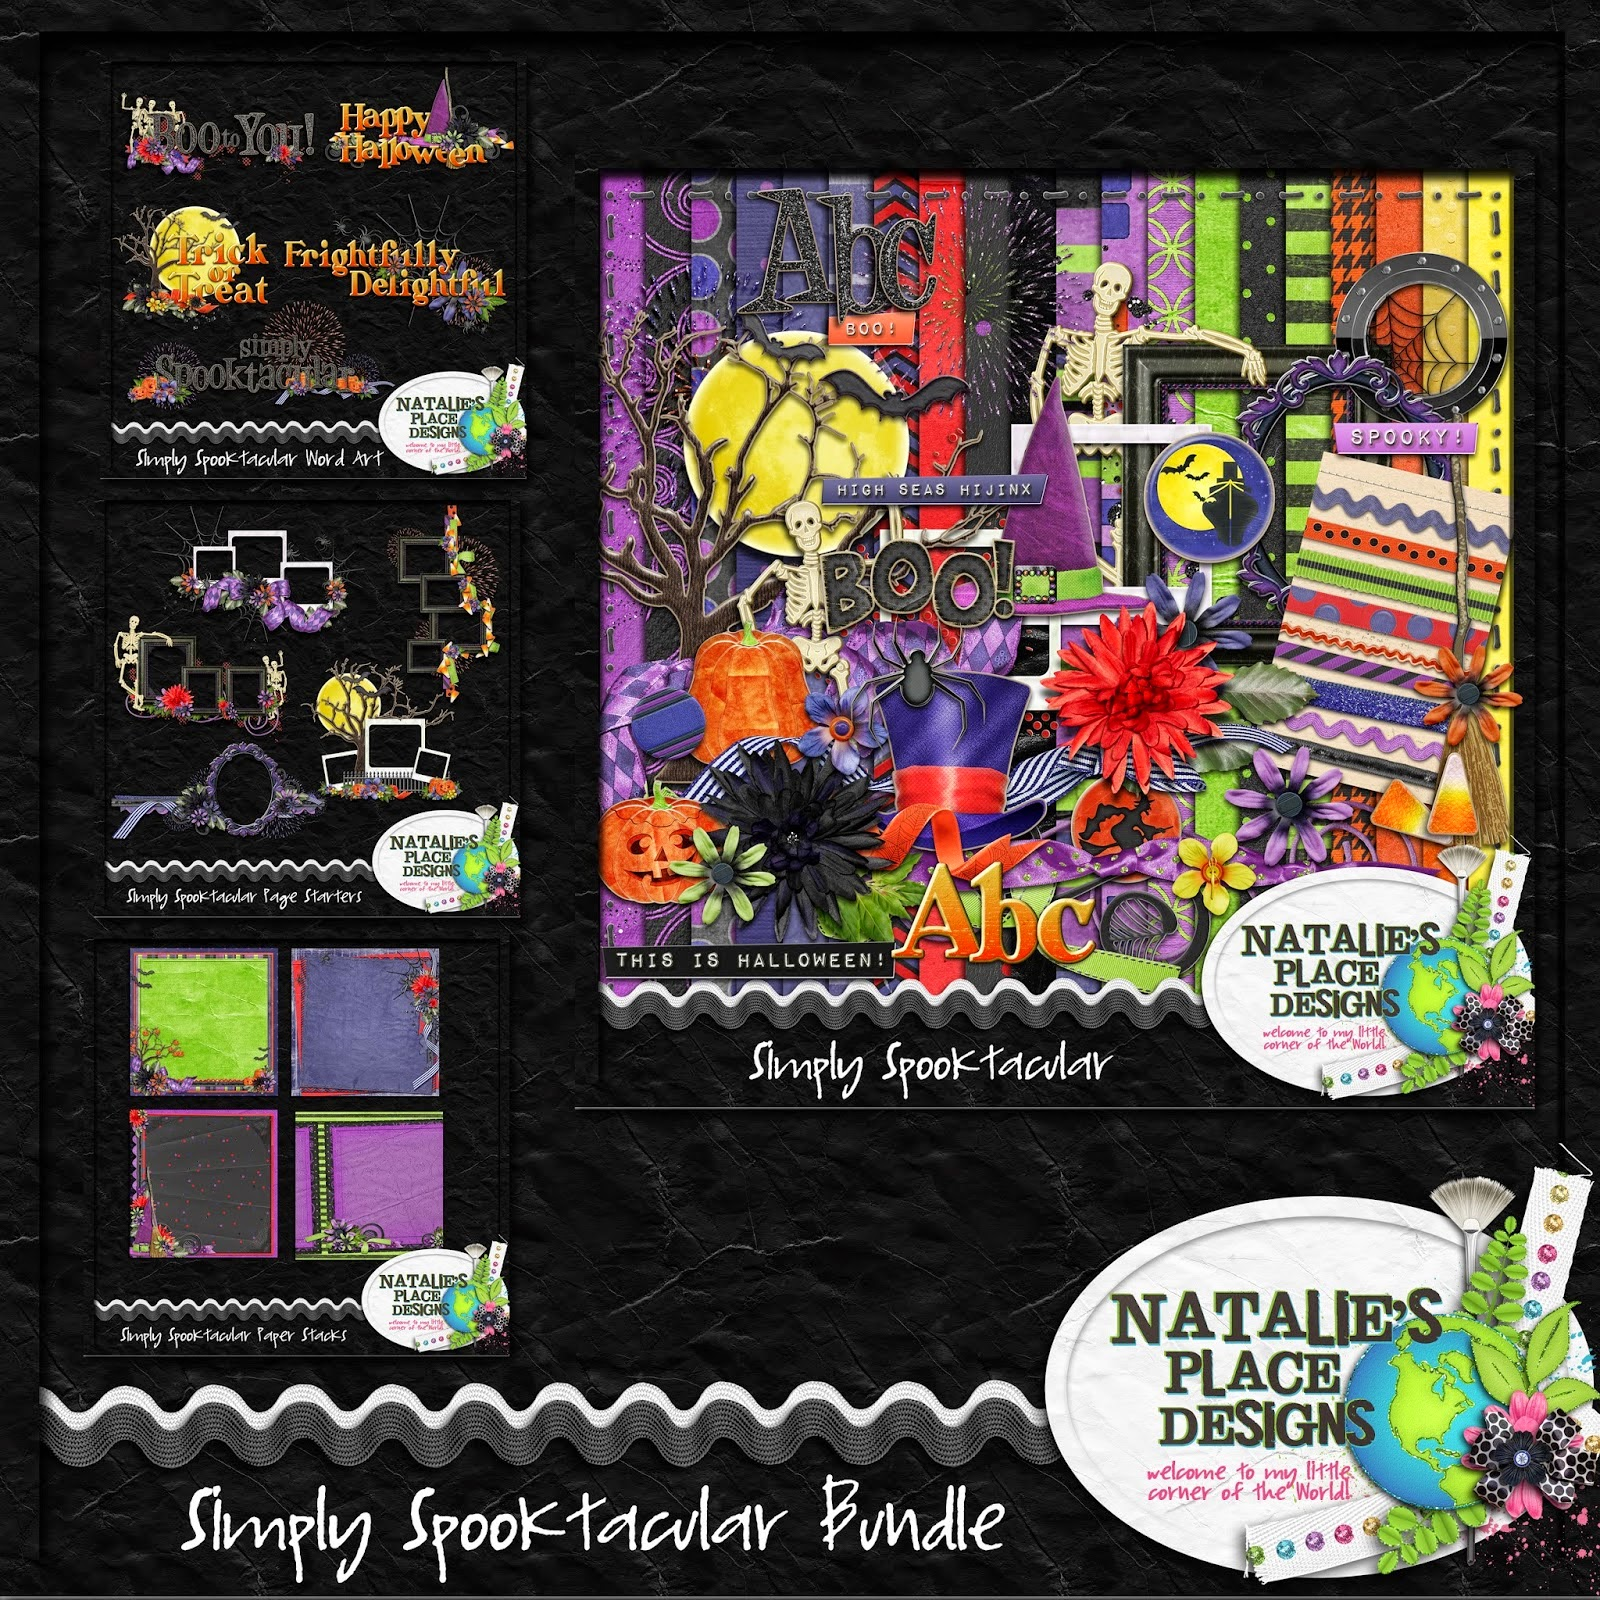 http://www.nataliesplacedesigns.com/store/p456/Simply_Spooktacular_Bundle.html